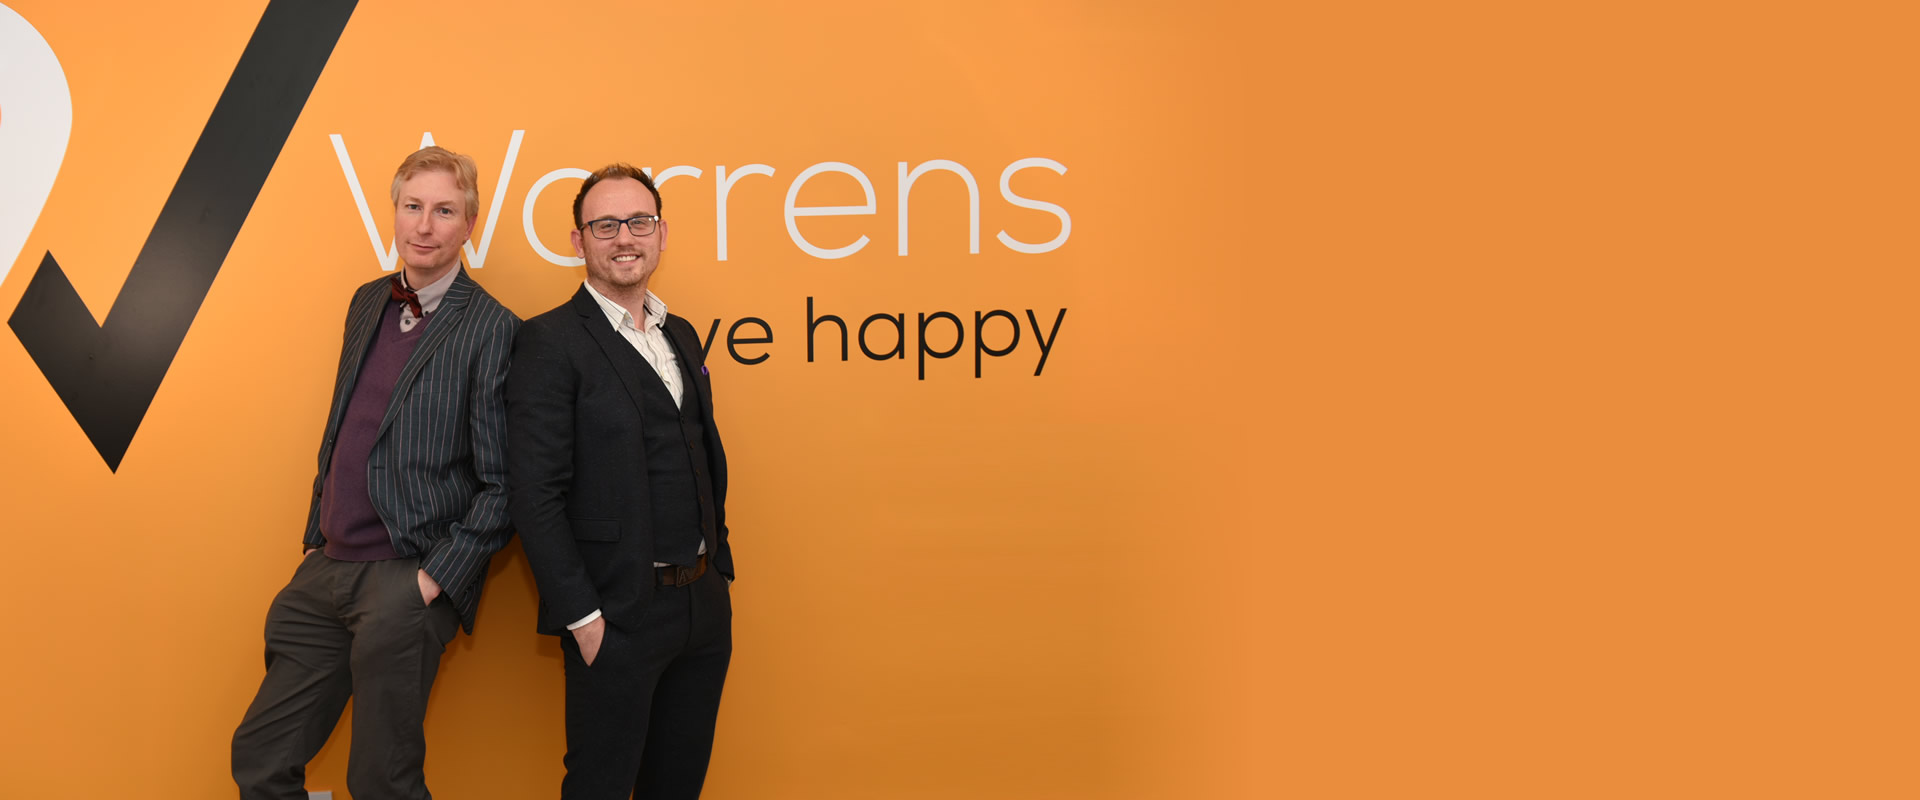 Warrens Estate and Letting Agents in Stockport